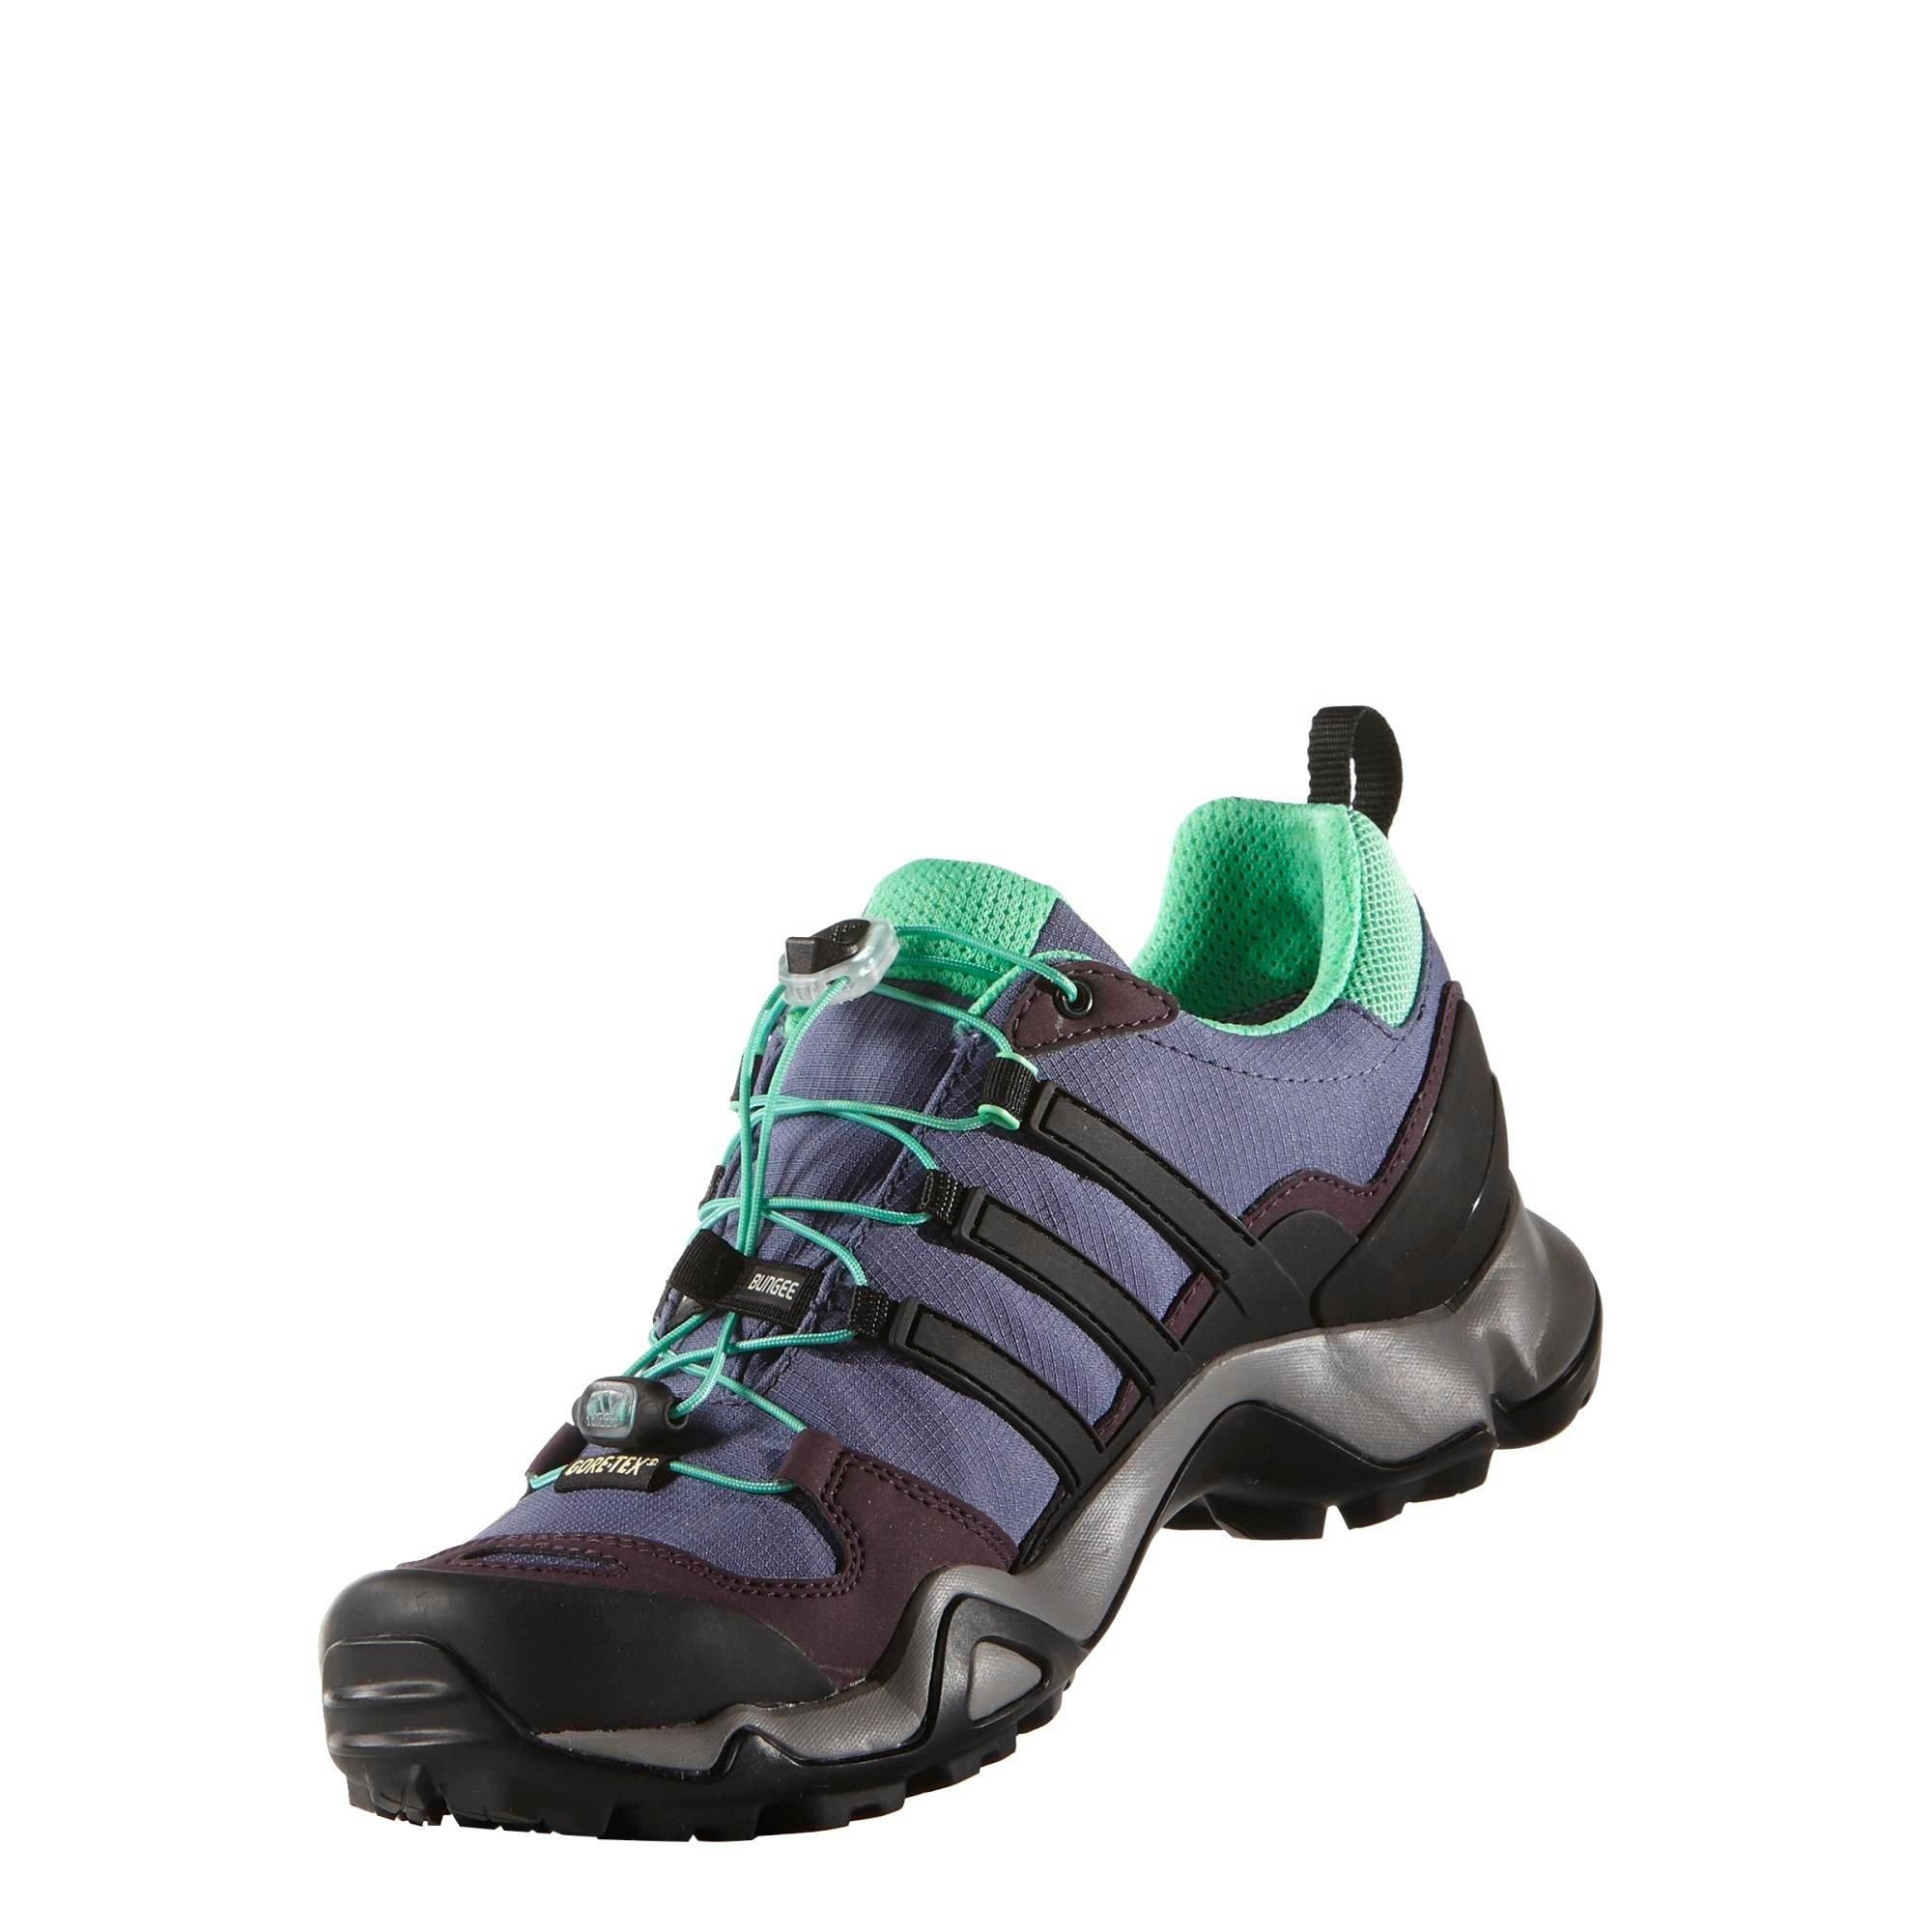 c4283f7e36bb7 A lightweight yet waterproof and tough approach shoe from Addidas